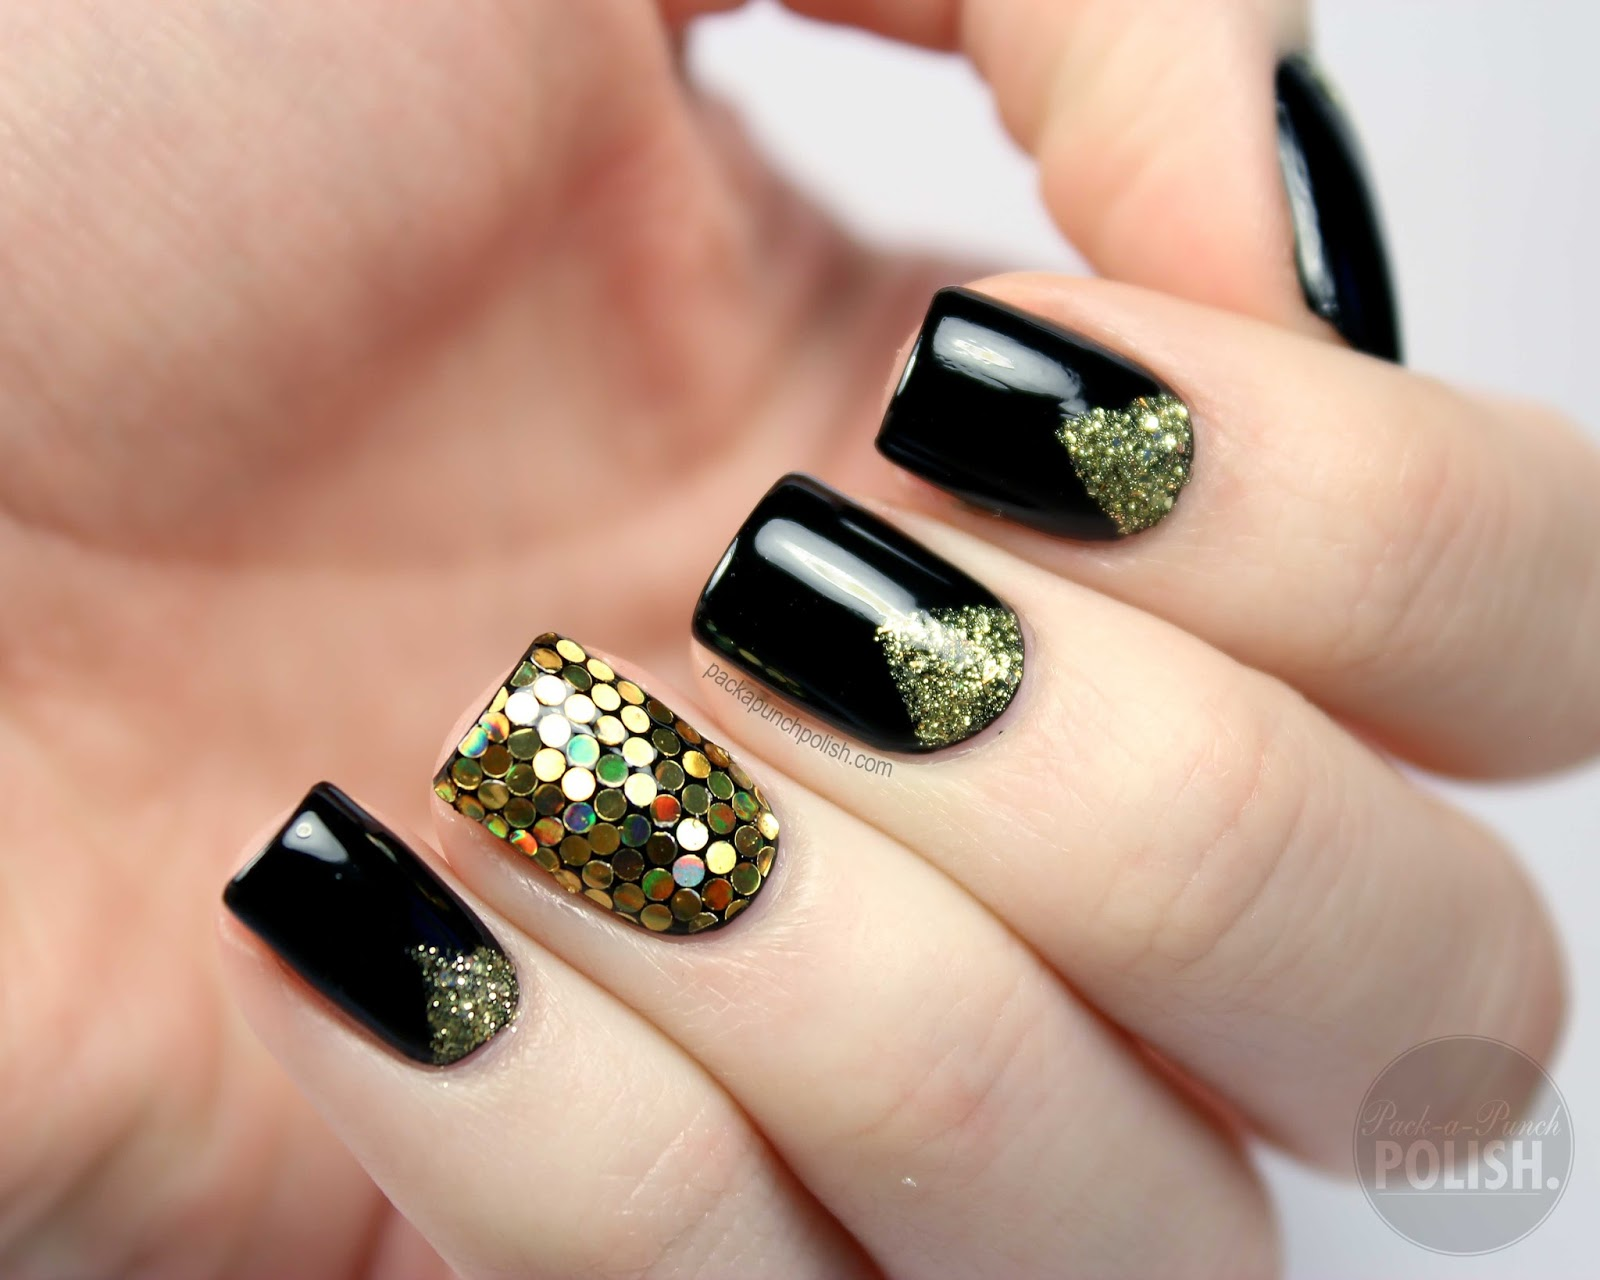 Packapunchpolish new years eve nail art tutorial new years eve nail art tutorial prinsesfo Images